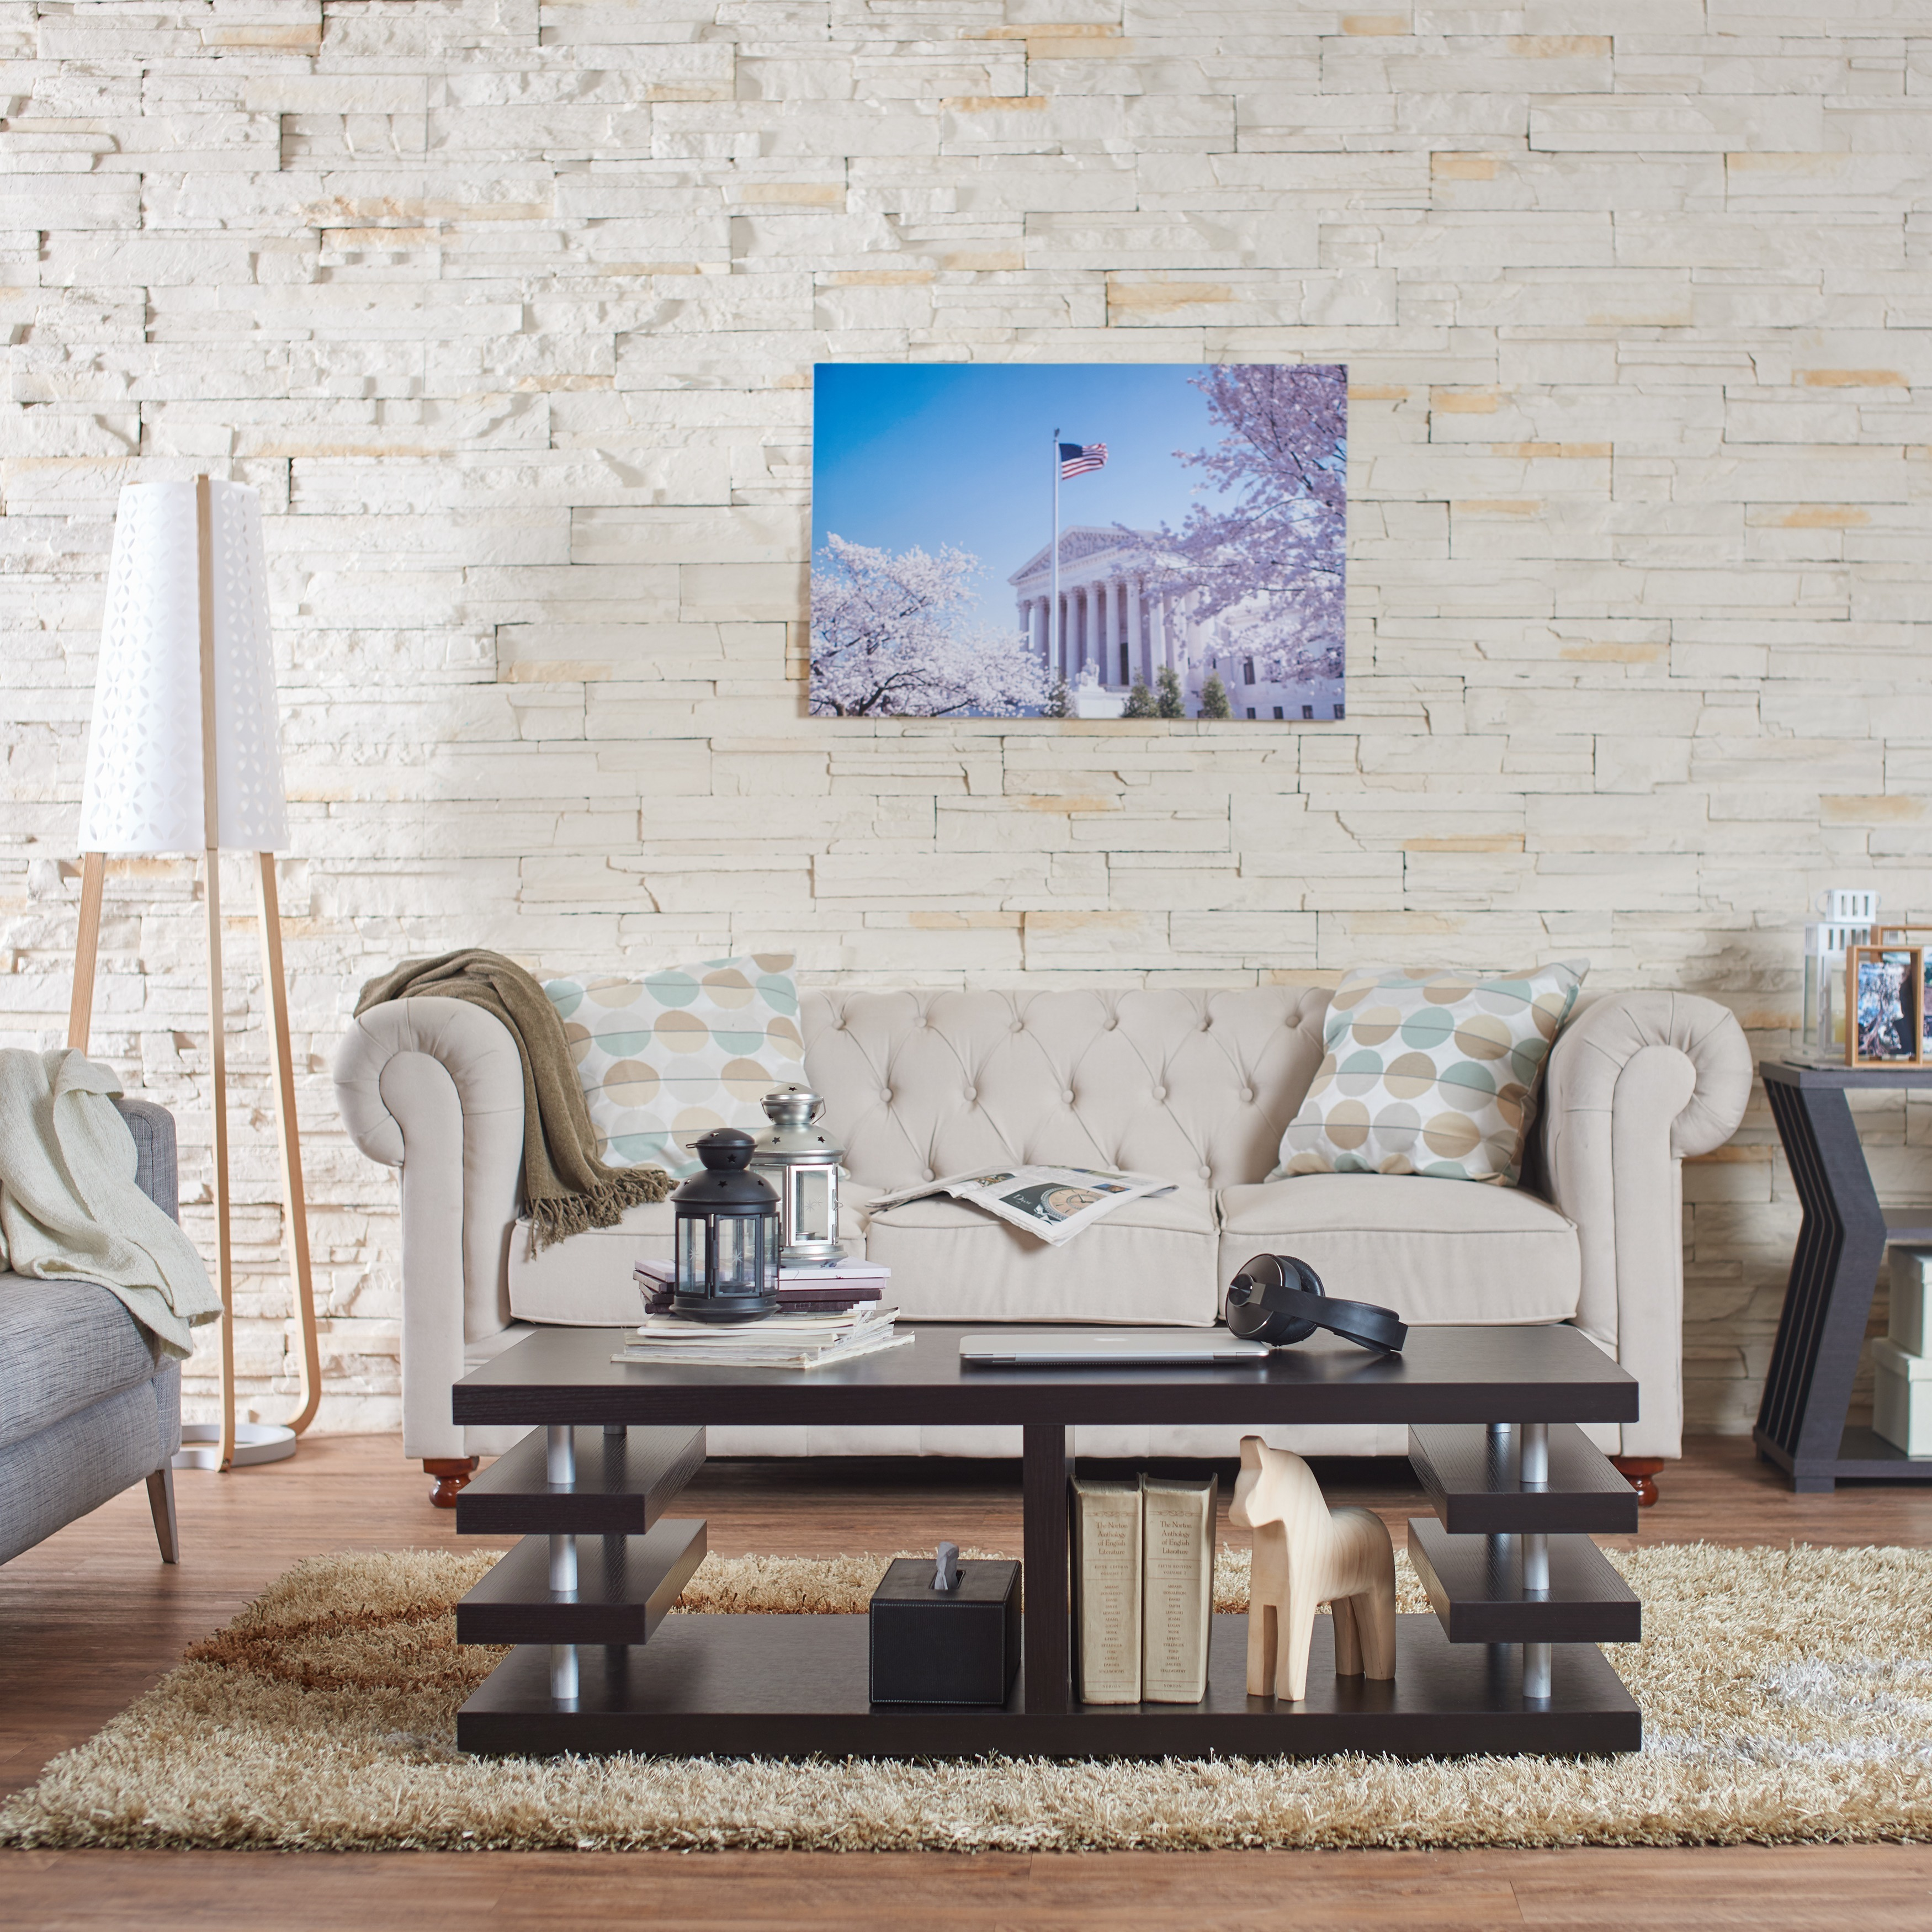 Furniture Of America Architectural Dark Espresso Inspired Coffee Table Free Shipping Today 6713755